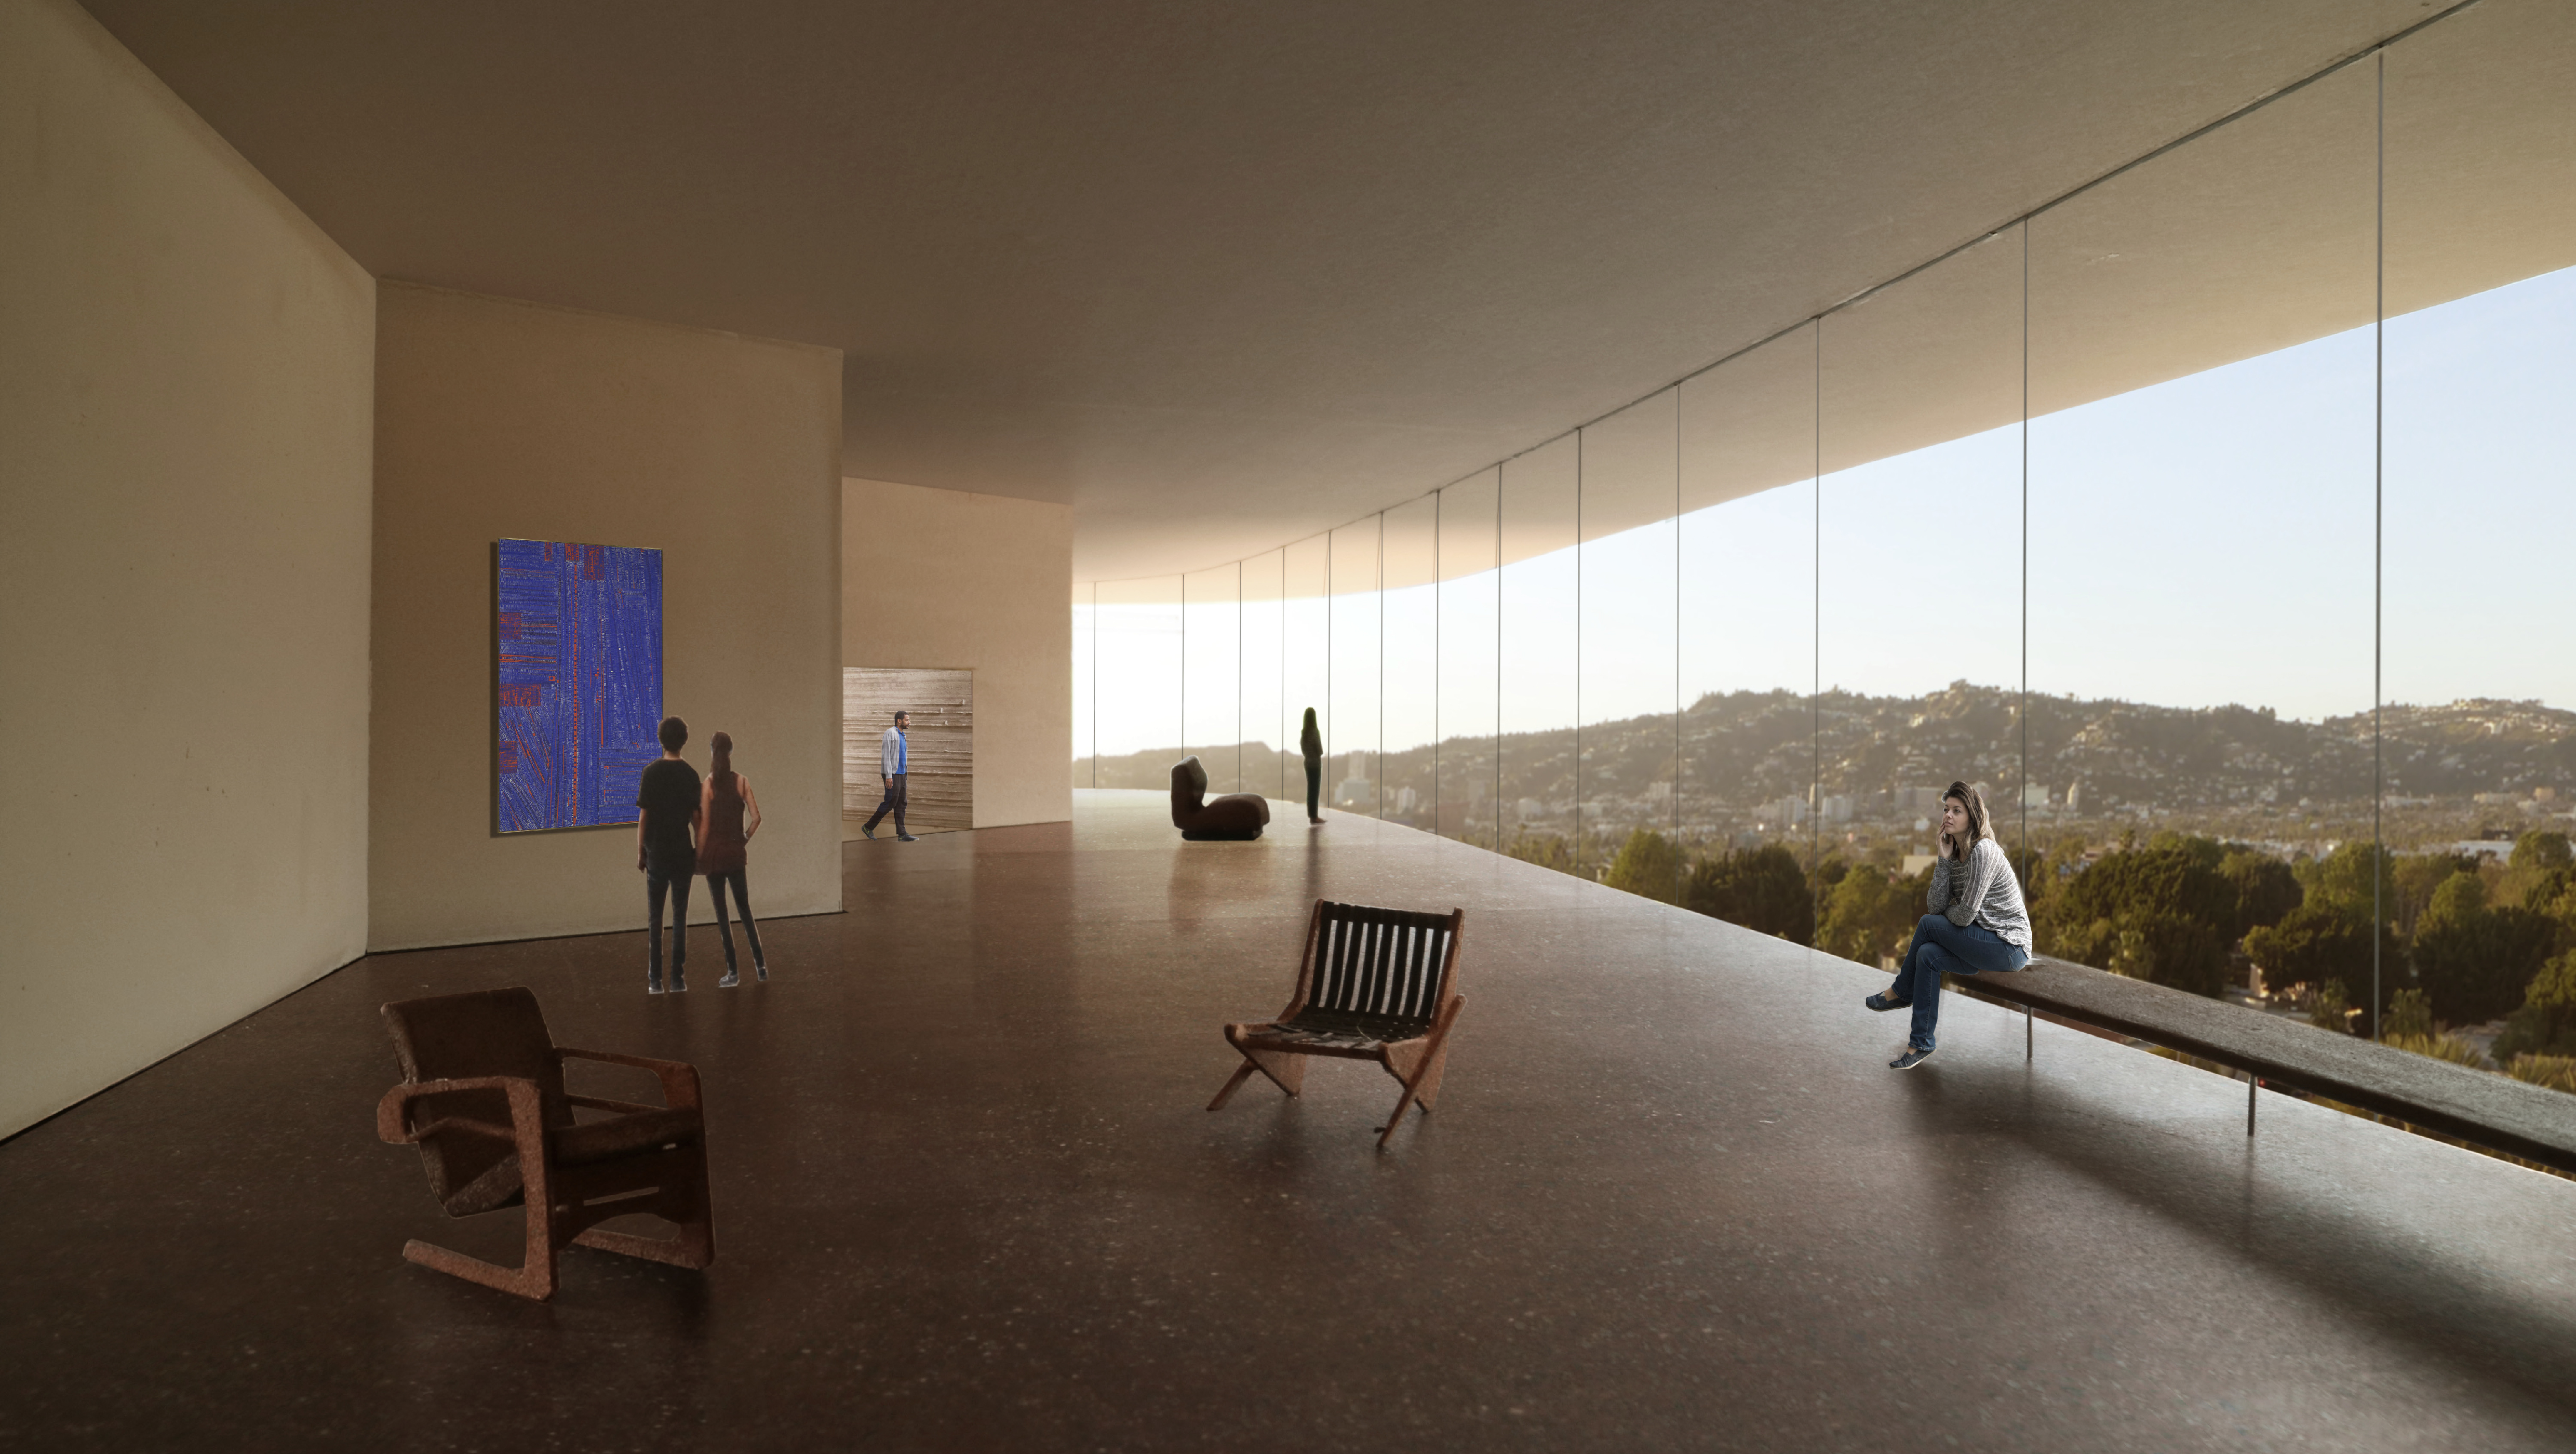 lacma redesign here are the newest renderings curbed la zumthor s proposal has been to build a bridge over wilshire and that s still very much a part of the plan in 2015 kcrw s design and architecture host